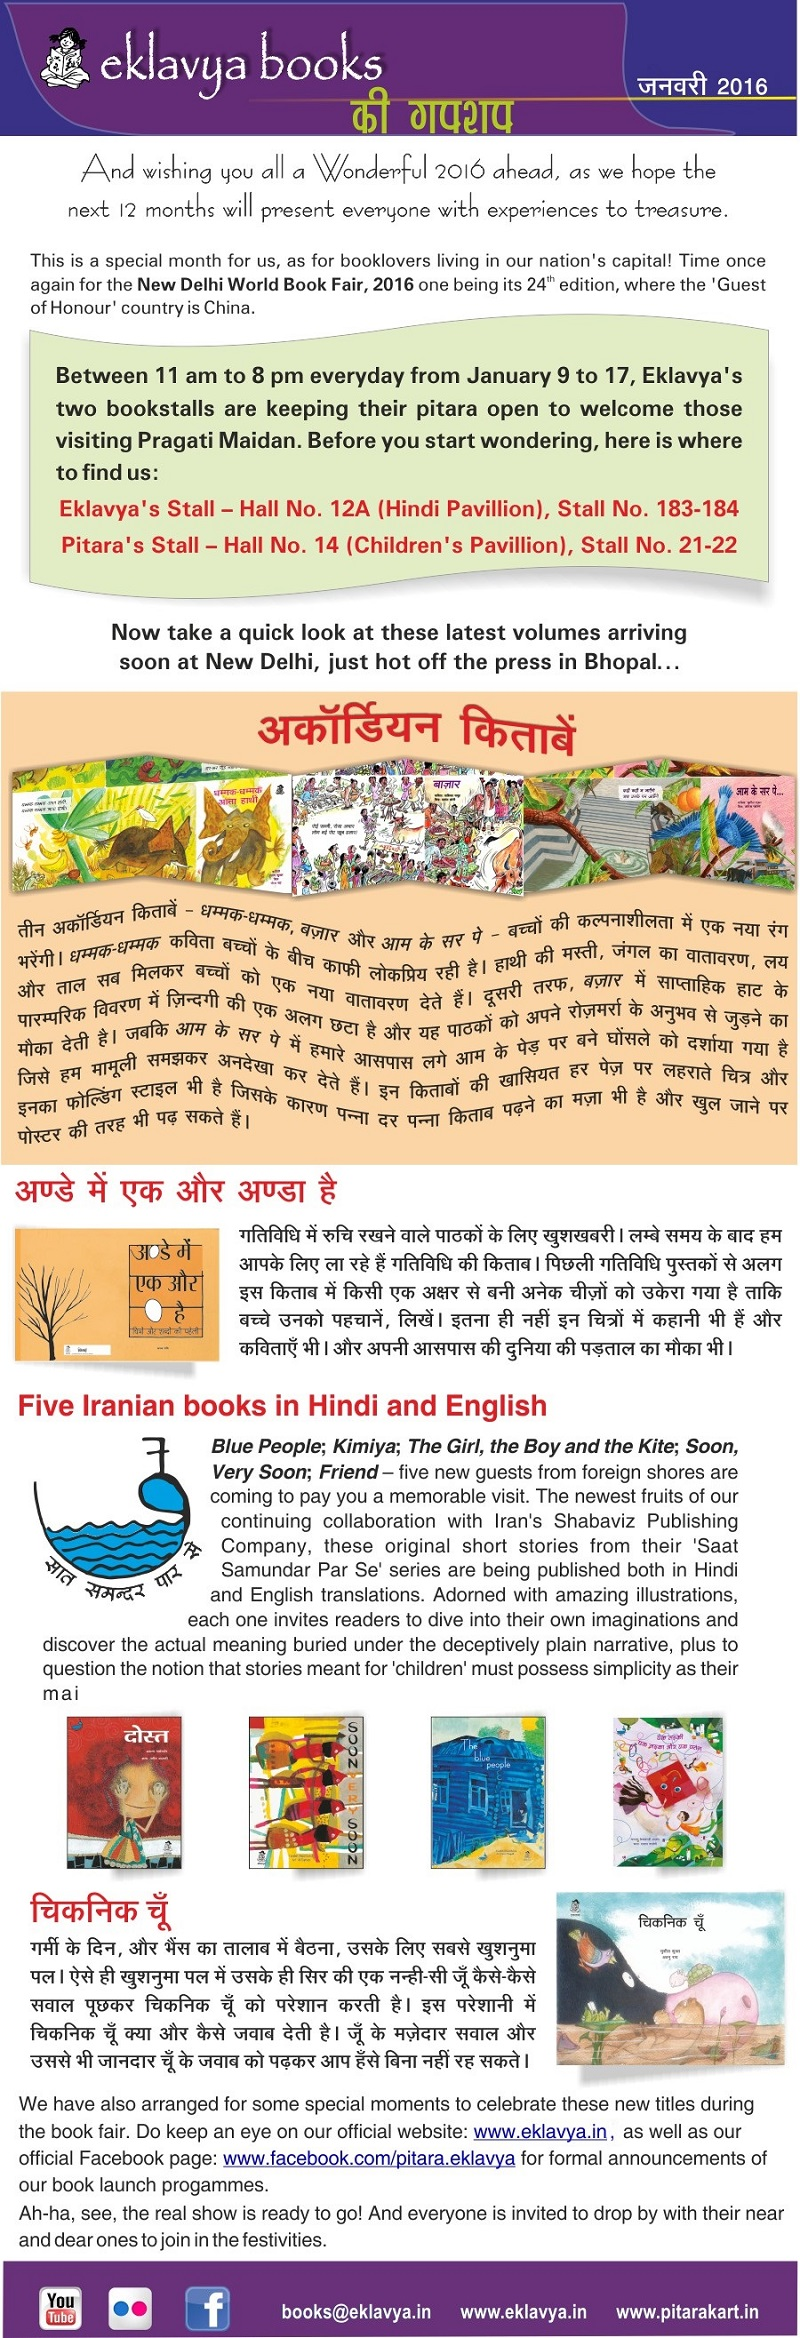 eklavyabooks ki gupshup - January 2016. Enable image for viewing newsletter